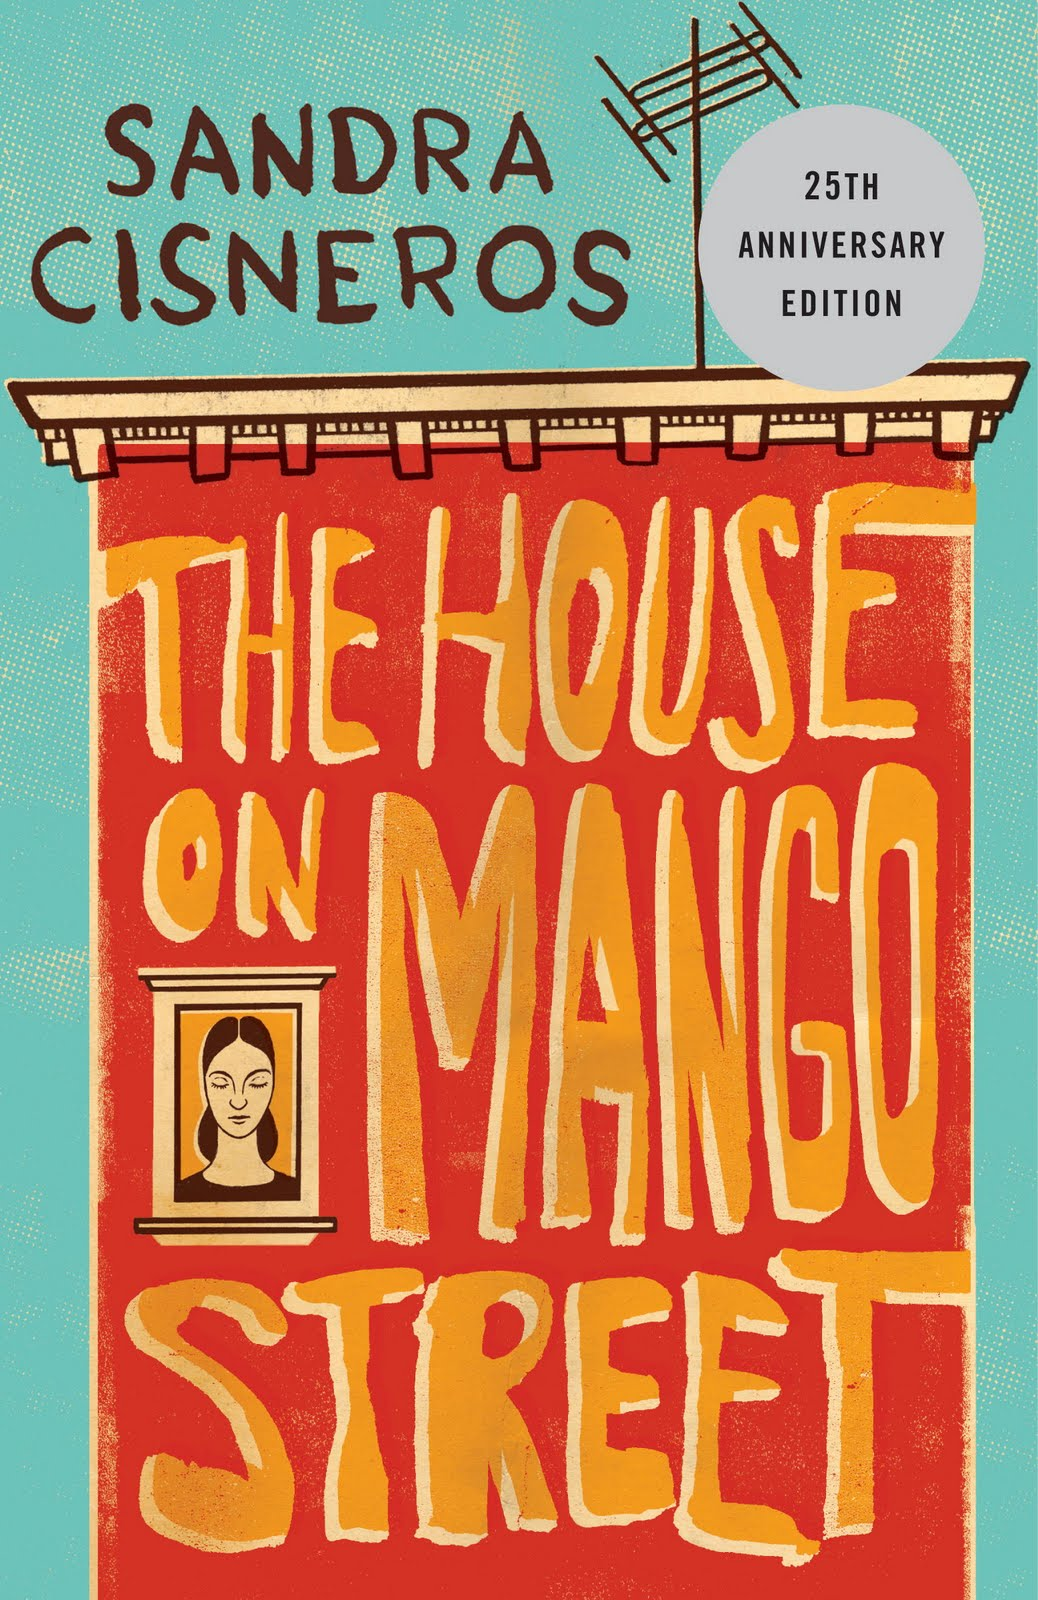 mexican american and mango street This lesson helps students understand cultural differences with the house on mango street one presenting a stylishly dressed mexican american pregnant woman, another presenting two mexican american men in cowboy hats and eating yellow popsicles.